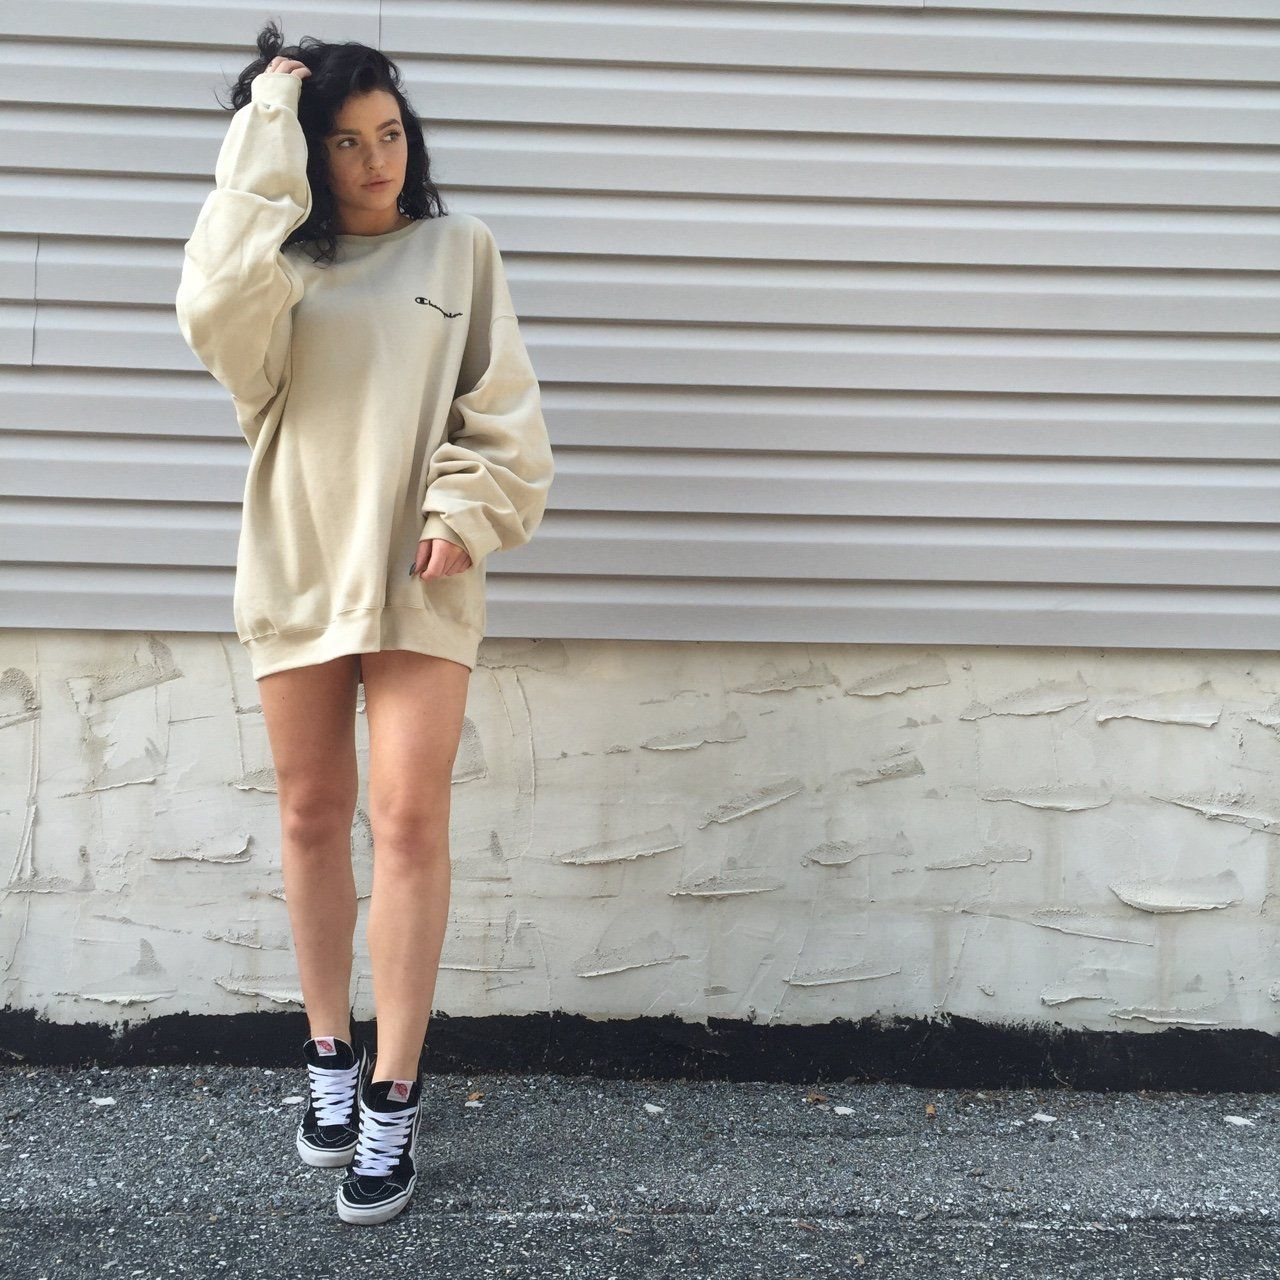 380af04be0c2 Brand new with tags! Vintage 90s oversized CHAMPION sweatshirt jumper. Rare  nude color! Price is firm you cannot find this in stores anywhere.